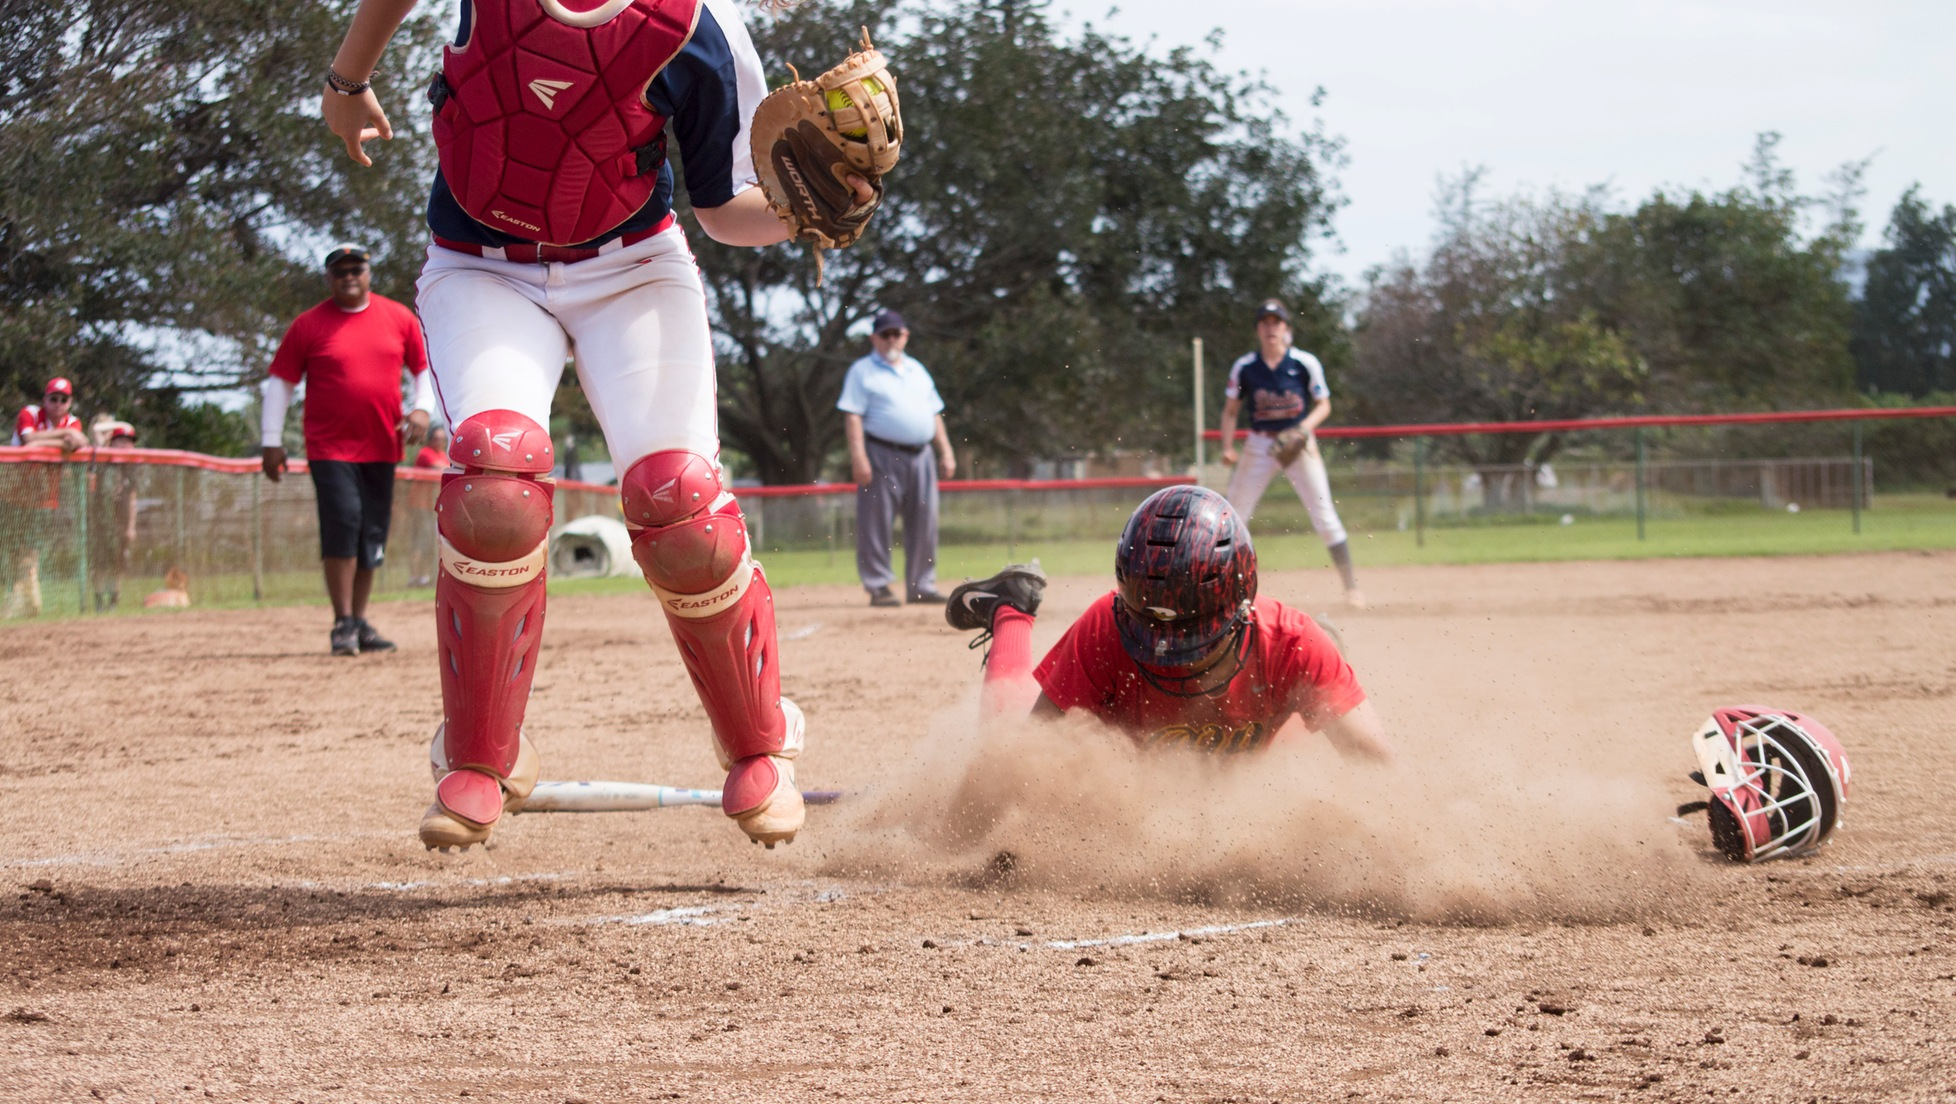 Lizabelle Talataina slides into home for the walk-off run in the first game against No. 13 Dixie State.